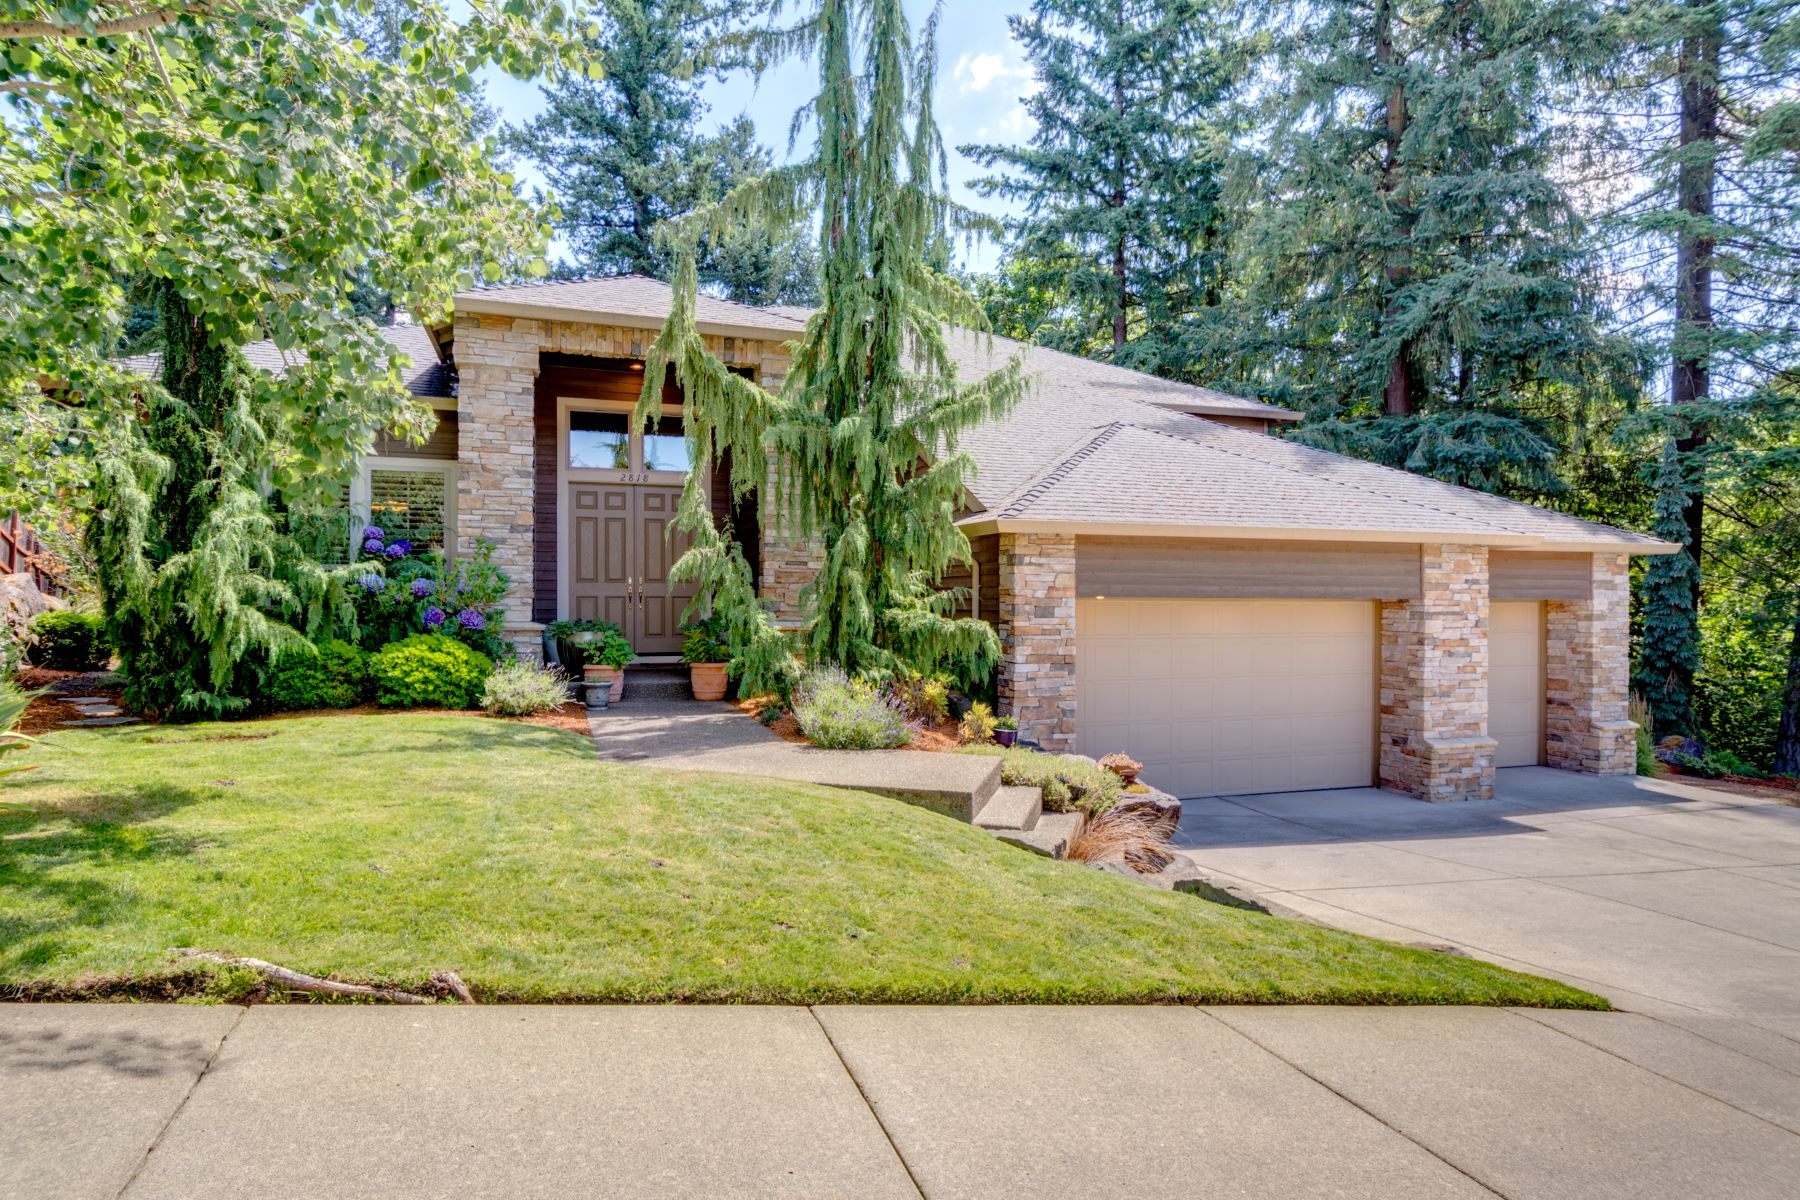 House for Sale at Superior Quality in Holly Hills 2818 NW DAHLIA CT Camas, Washington 98607 United States